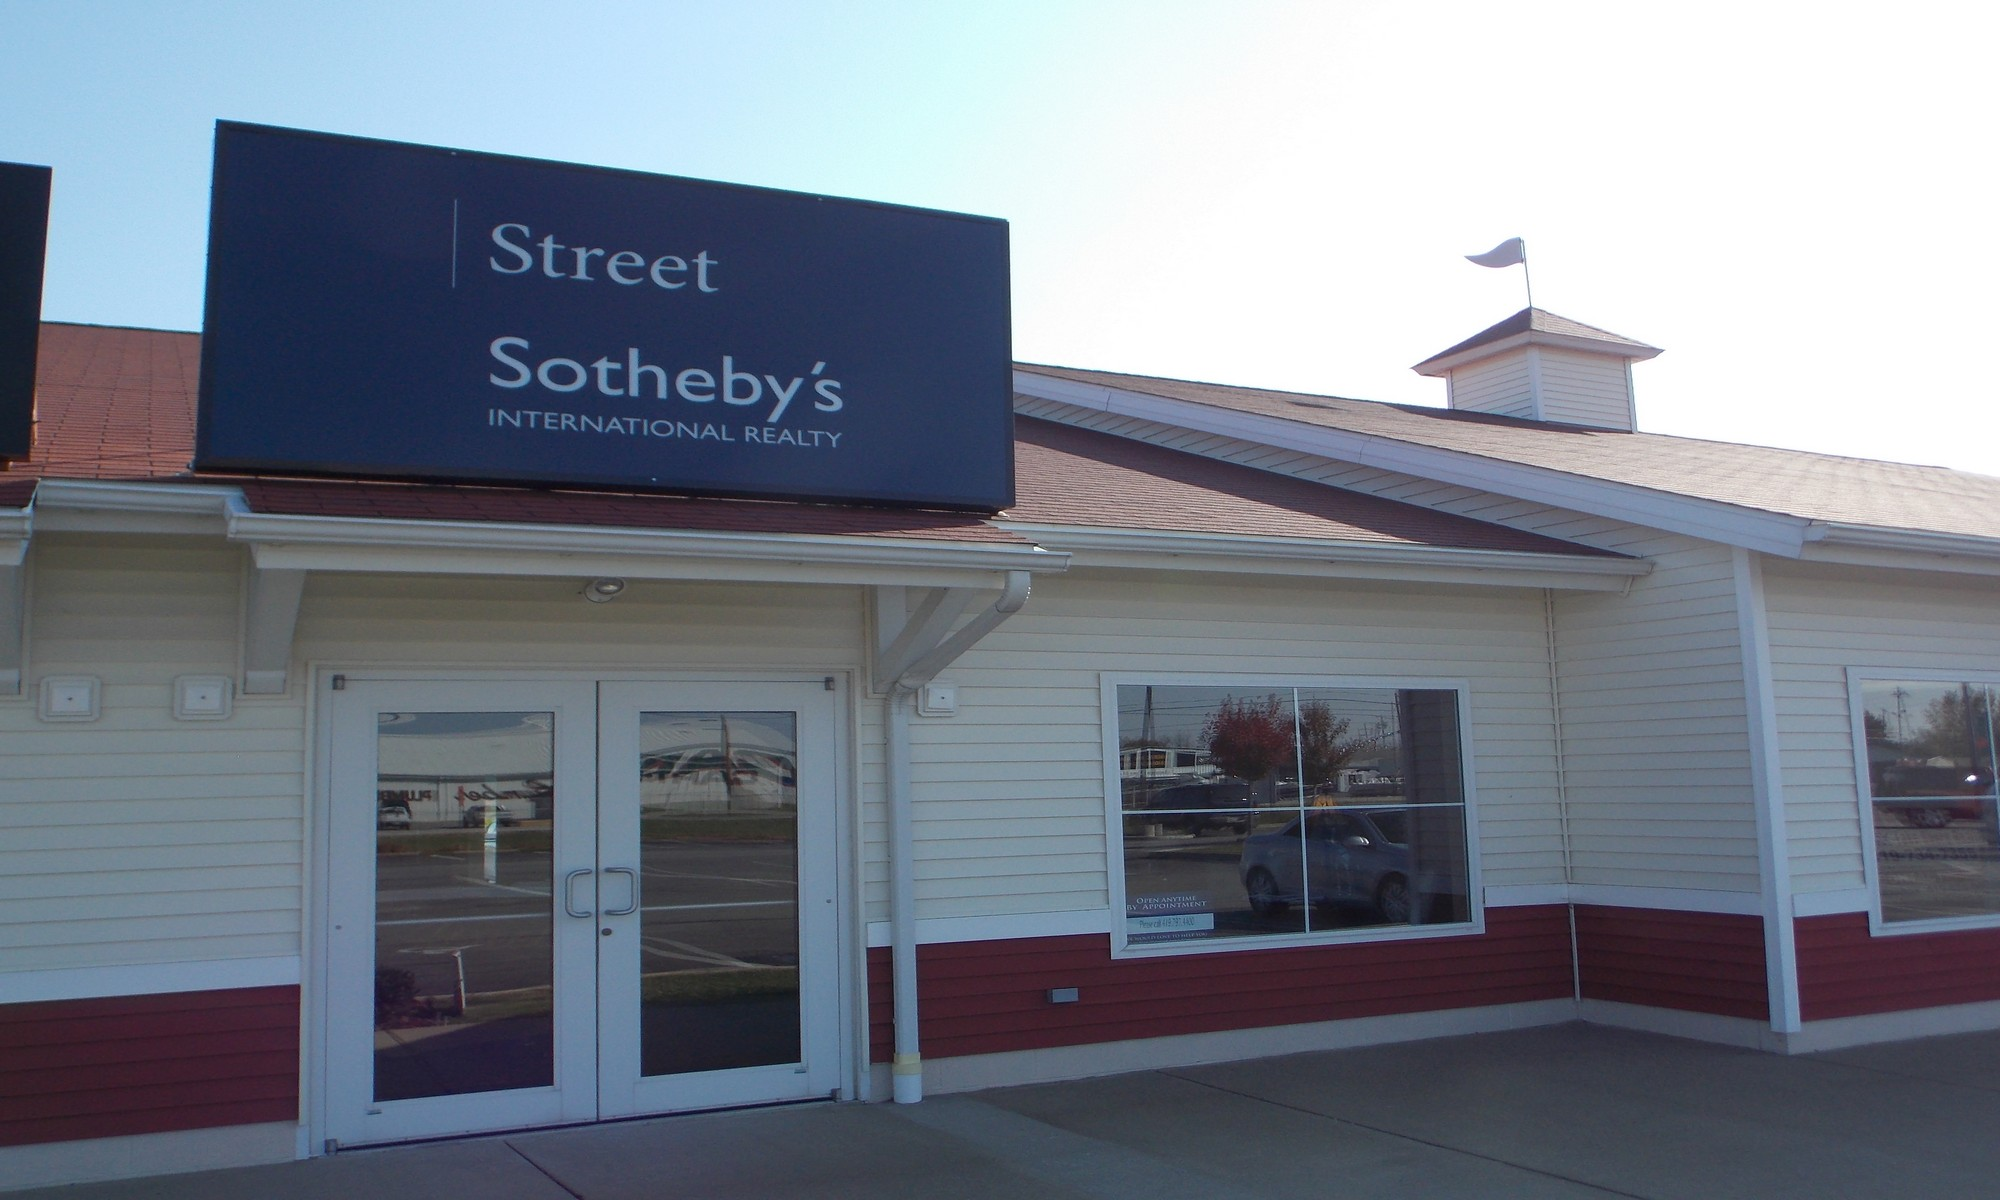 Street Sotheby's International Realty